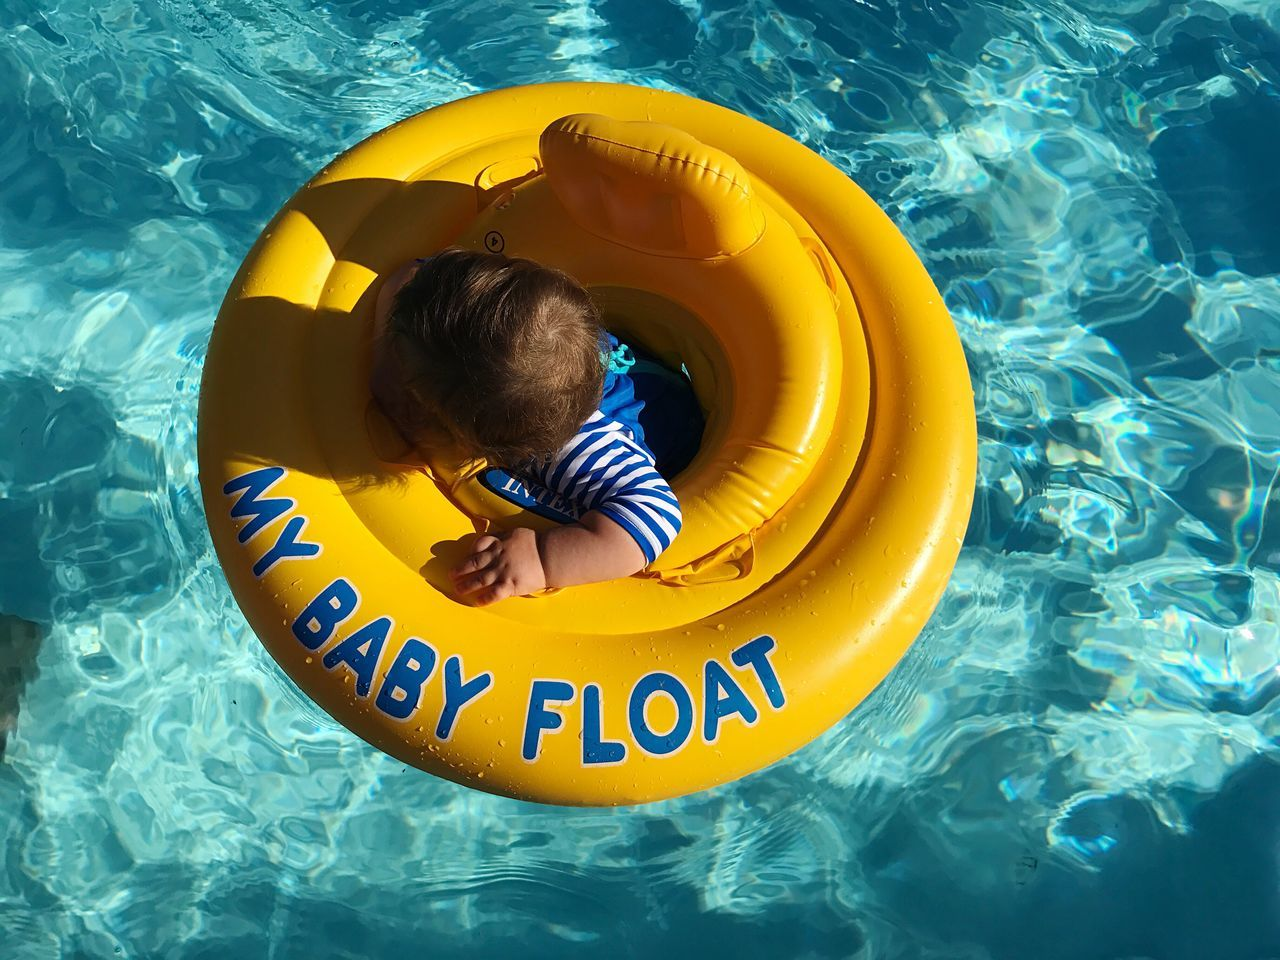 Childhood Swimming Pool Inflatable Ring One Person Water Day Pool Raft Leisure Activity Real People Playing Yellow Boys Outdoors Child Water Slide People